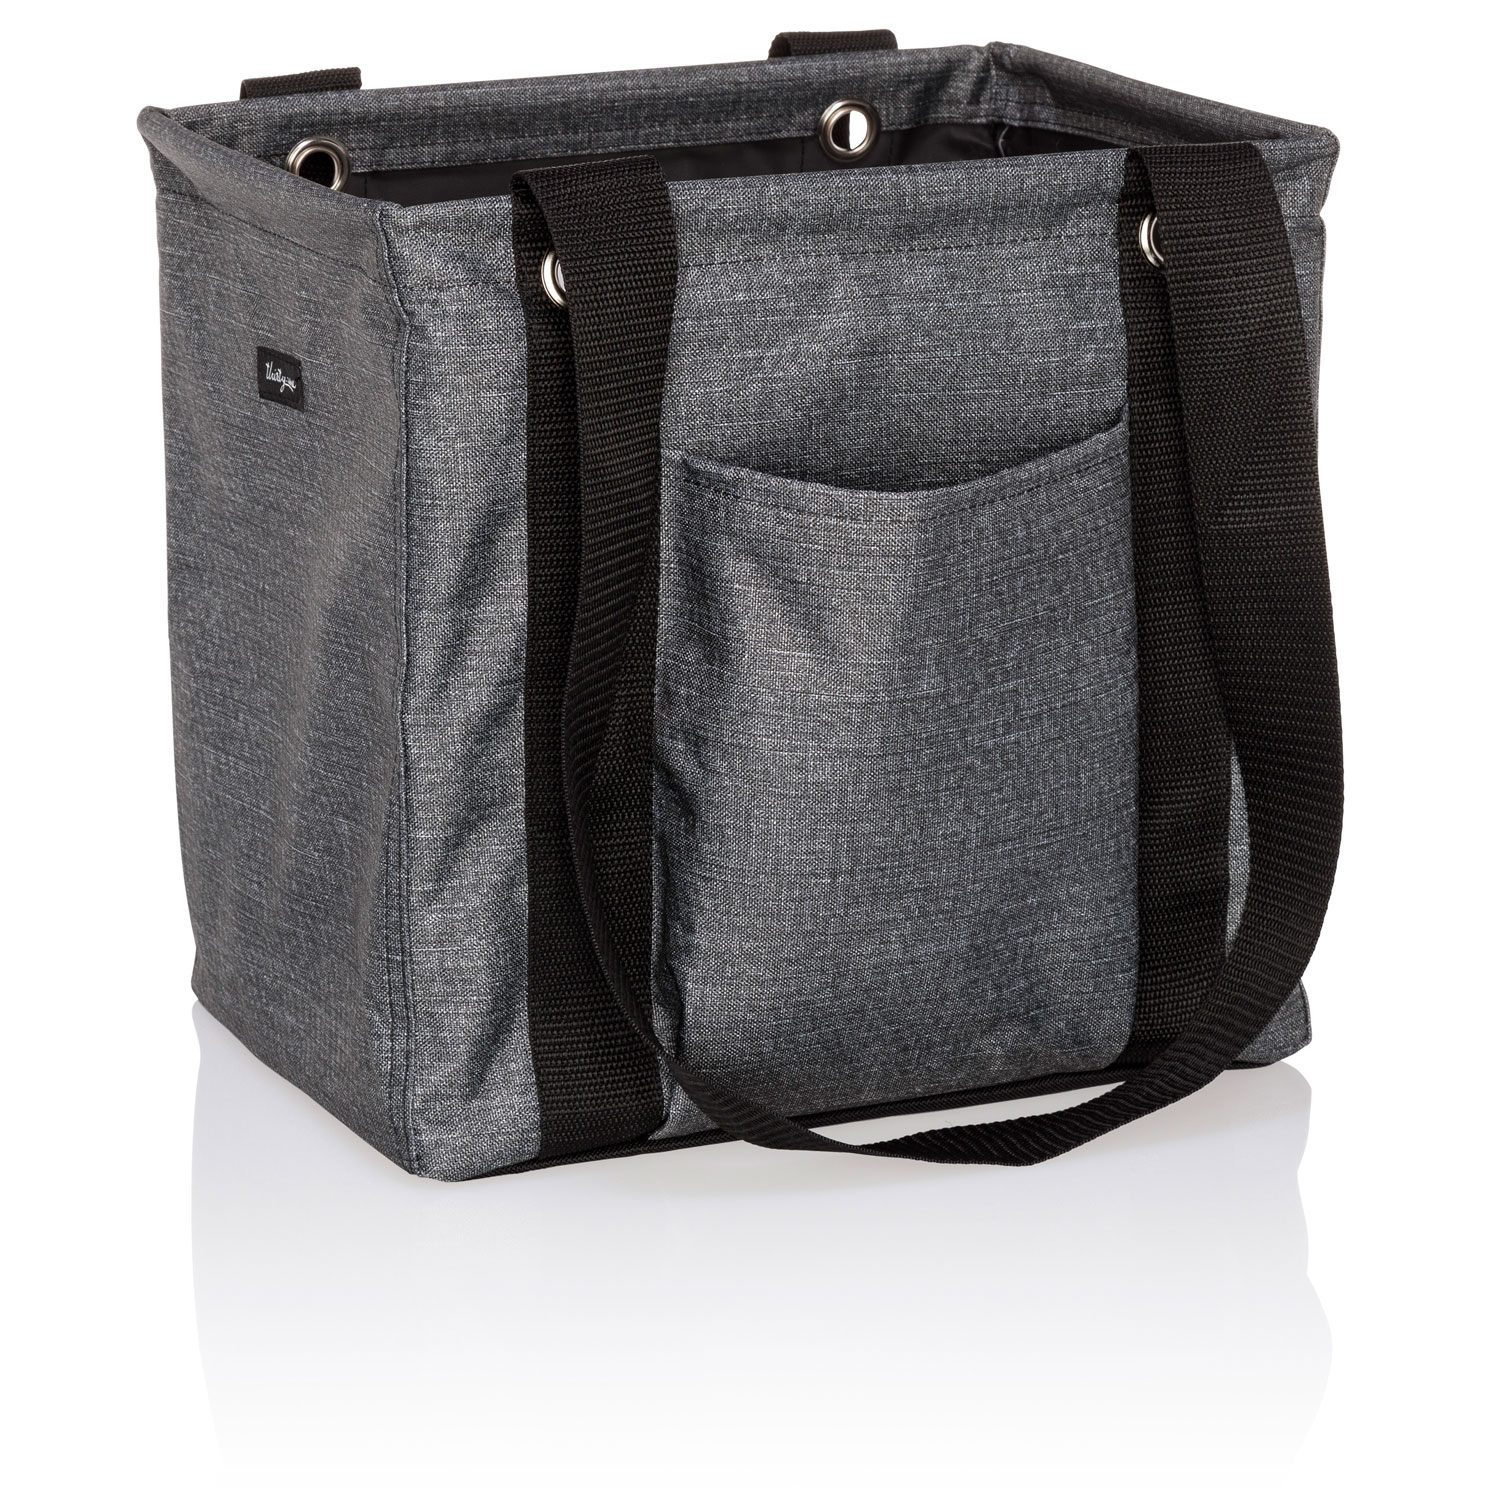 0e2593e4c914 Small Utility Tote | Thirty-One Gifts LLC